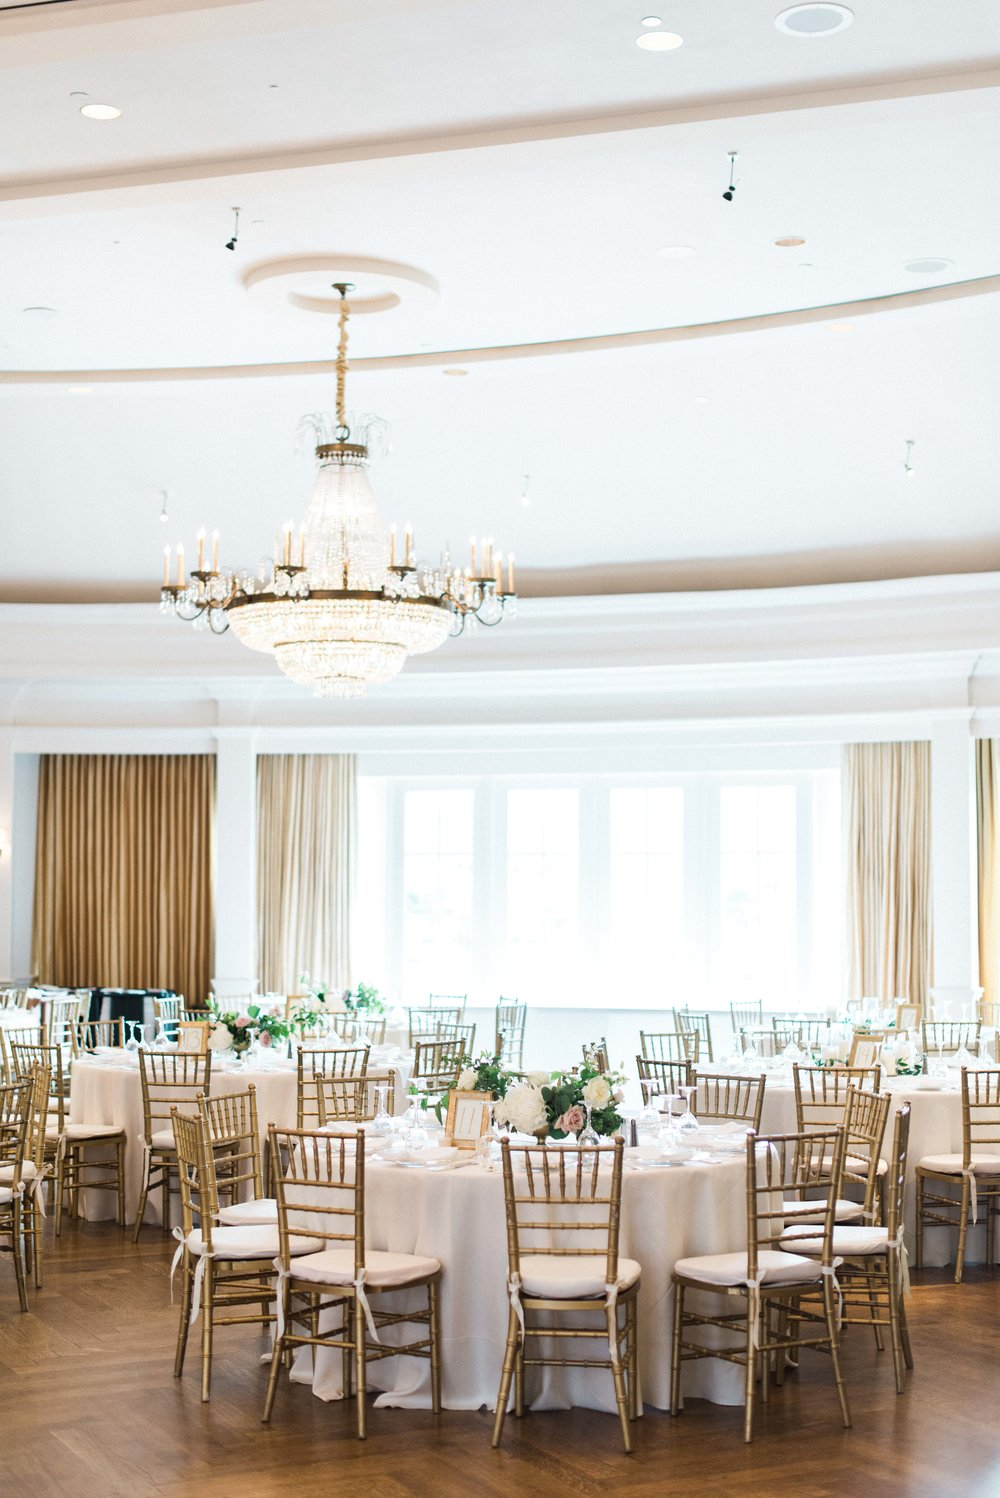 Fine-Art-Film-Houston-Wedding-Photographer-Best-Top-Luxury-Texas-Austin-Dallas-Destination-Dana-Fernandez-Photography-River-Oaks-Country-Club-South-Main-Baptist-Ceremony-Reception-Wedding-13.jpg